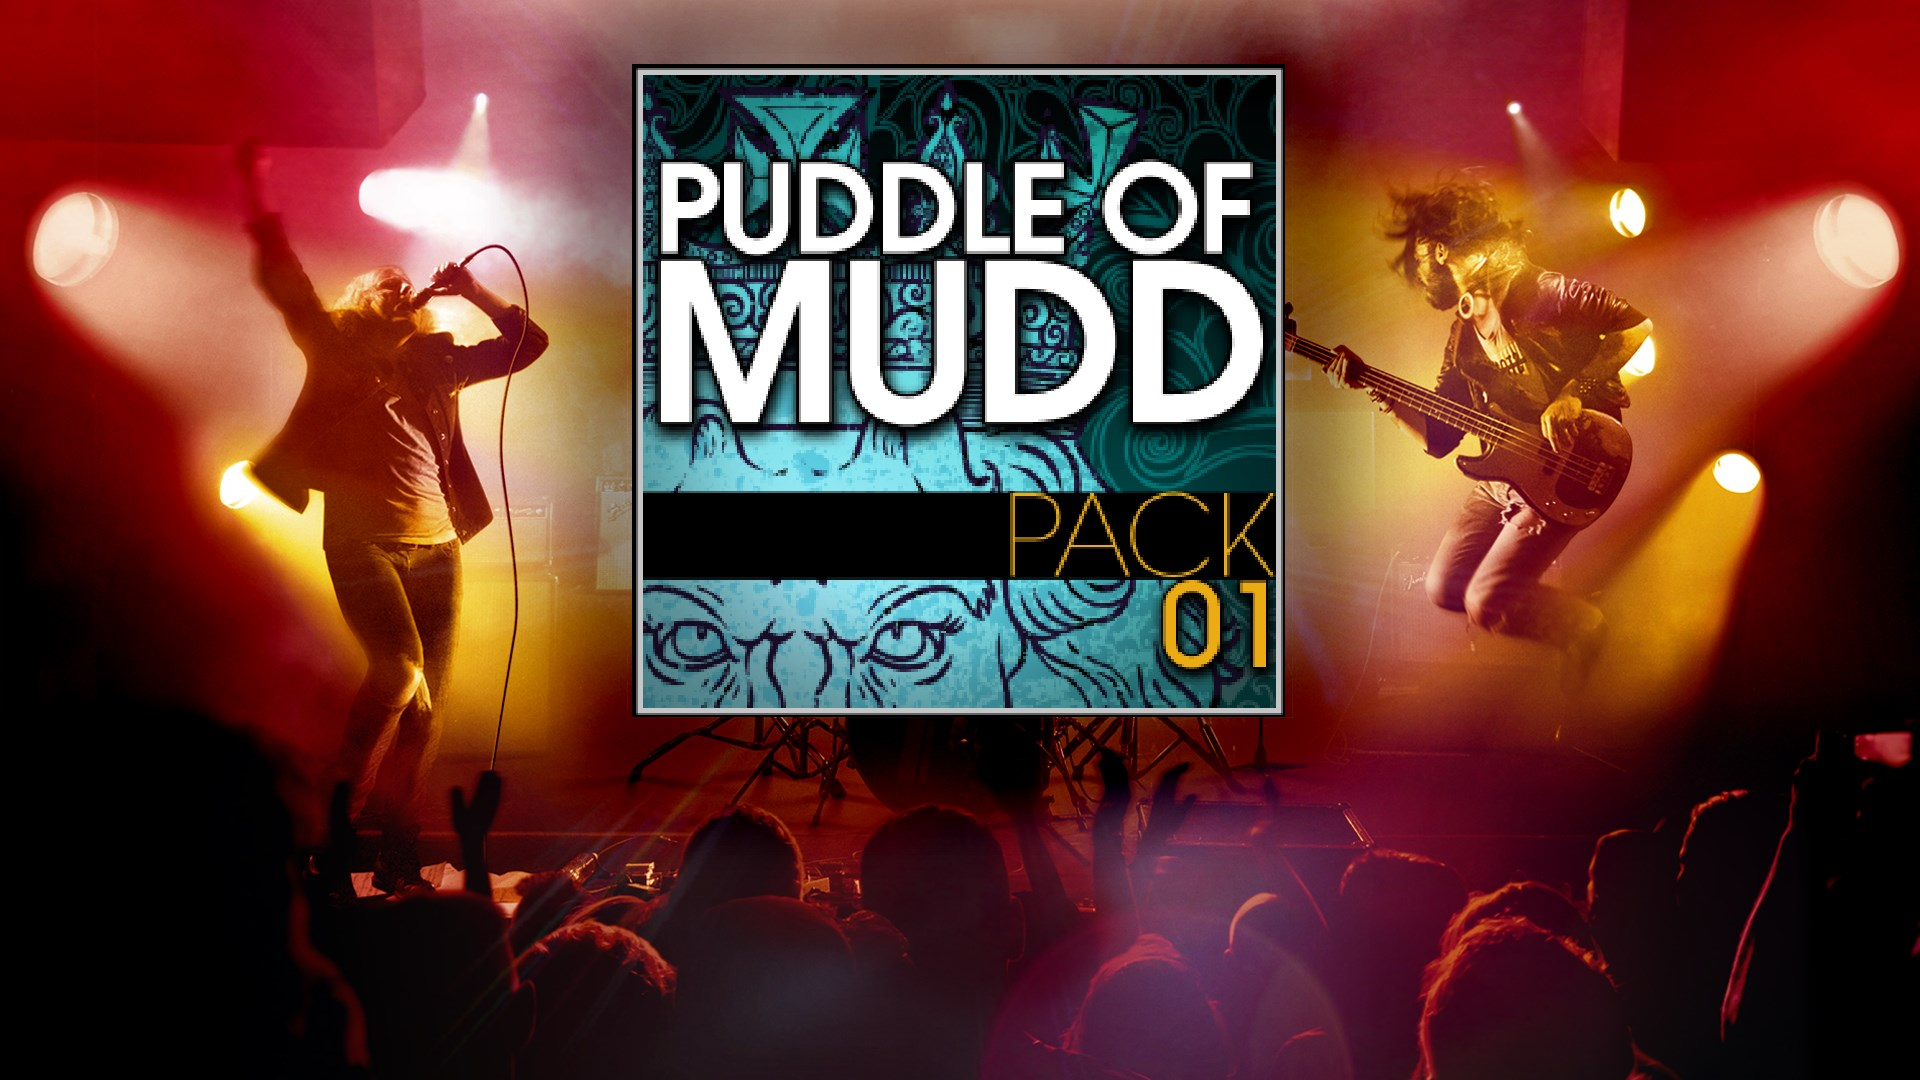 Buy Puddle of Mudd Pack 01 - Microsoft Store